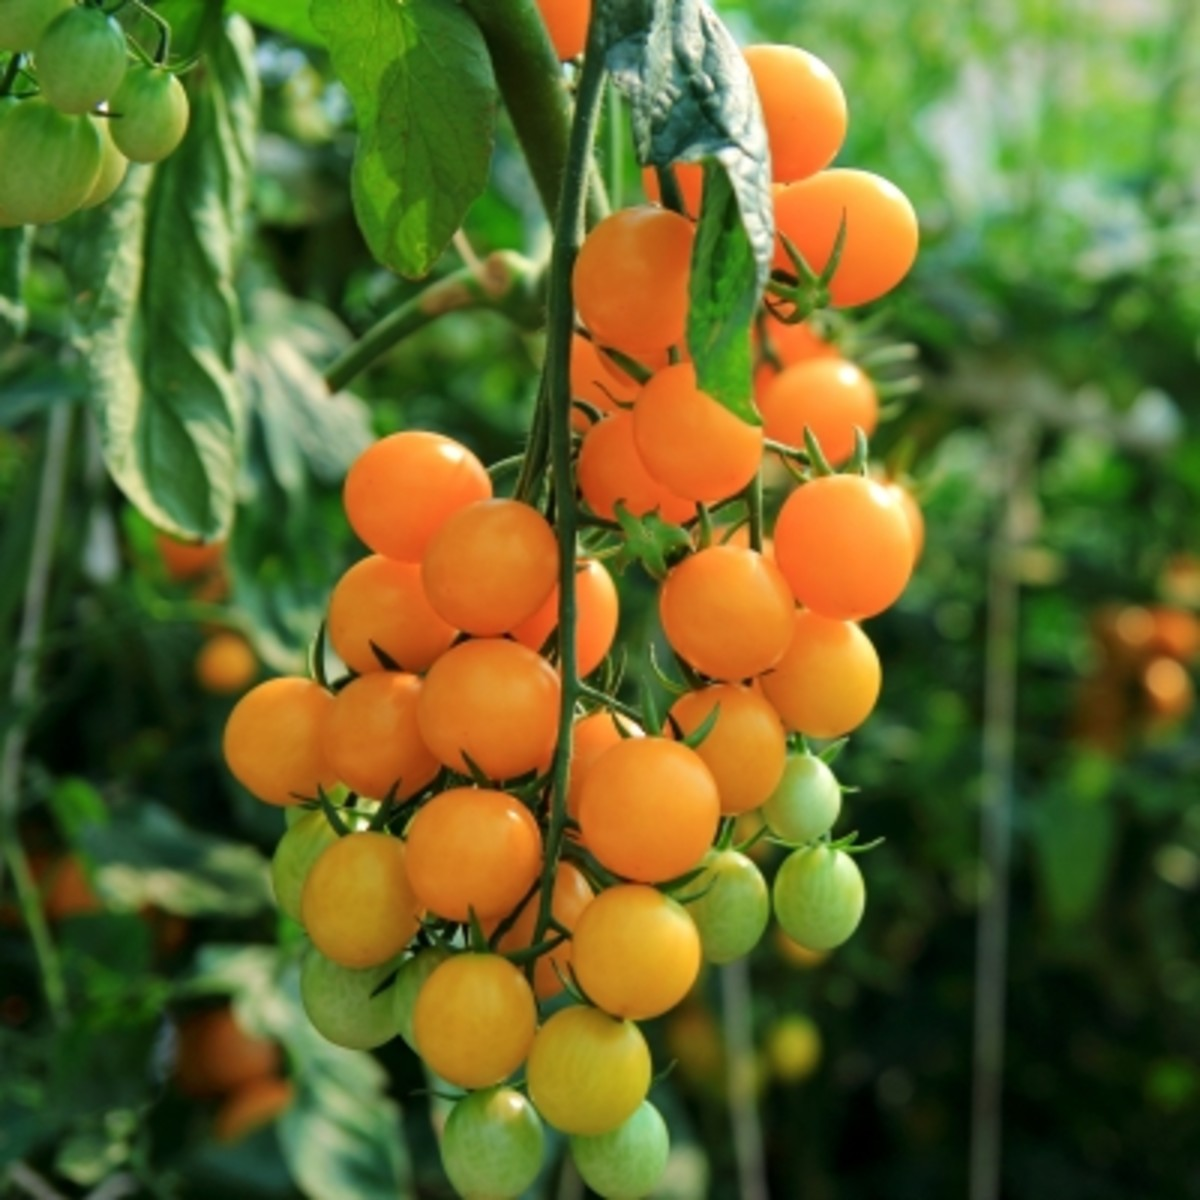 Organic cherry tomatoes are expensive to purchase. By growing your own you can save money.